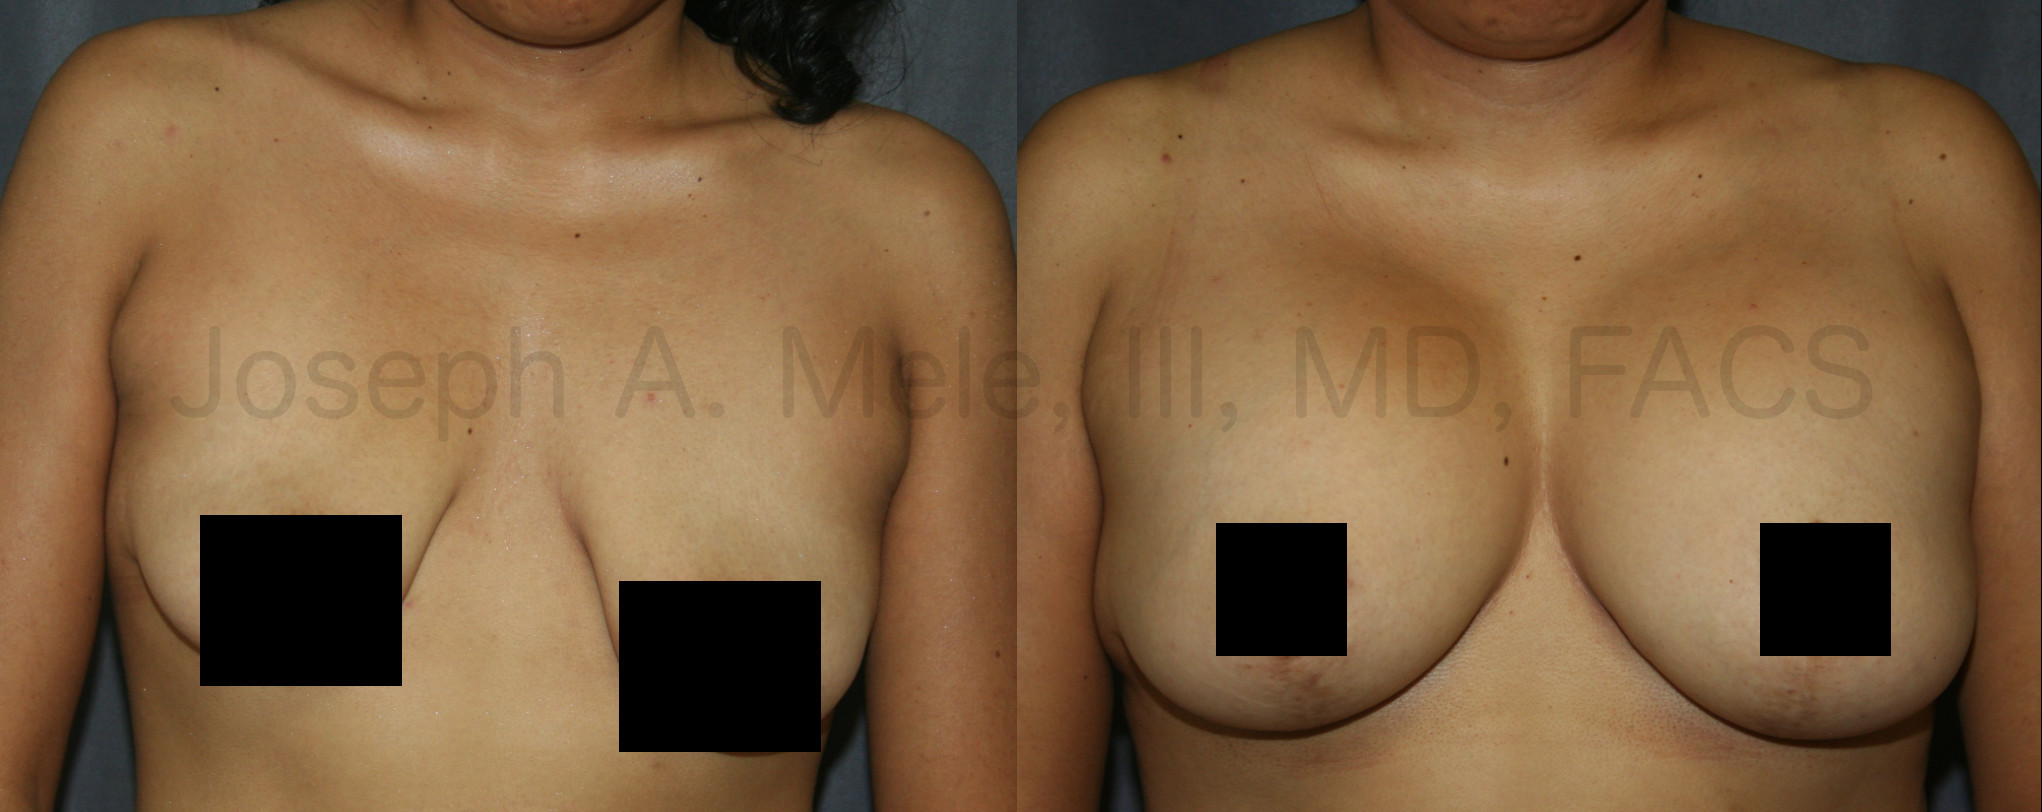 Breast Augmentation Breast Lift before and after pictures (mastopexy augmentation)